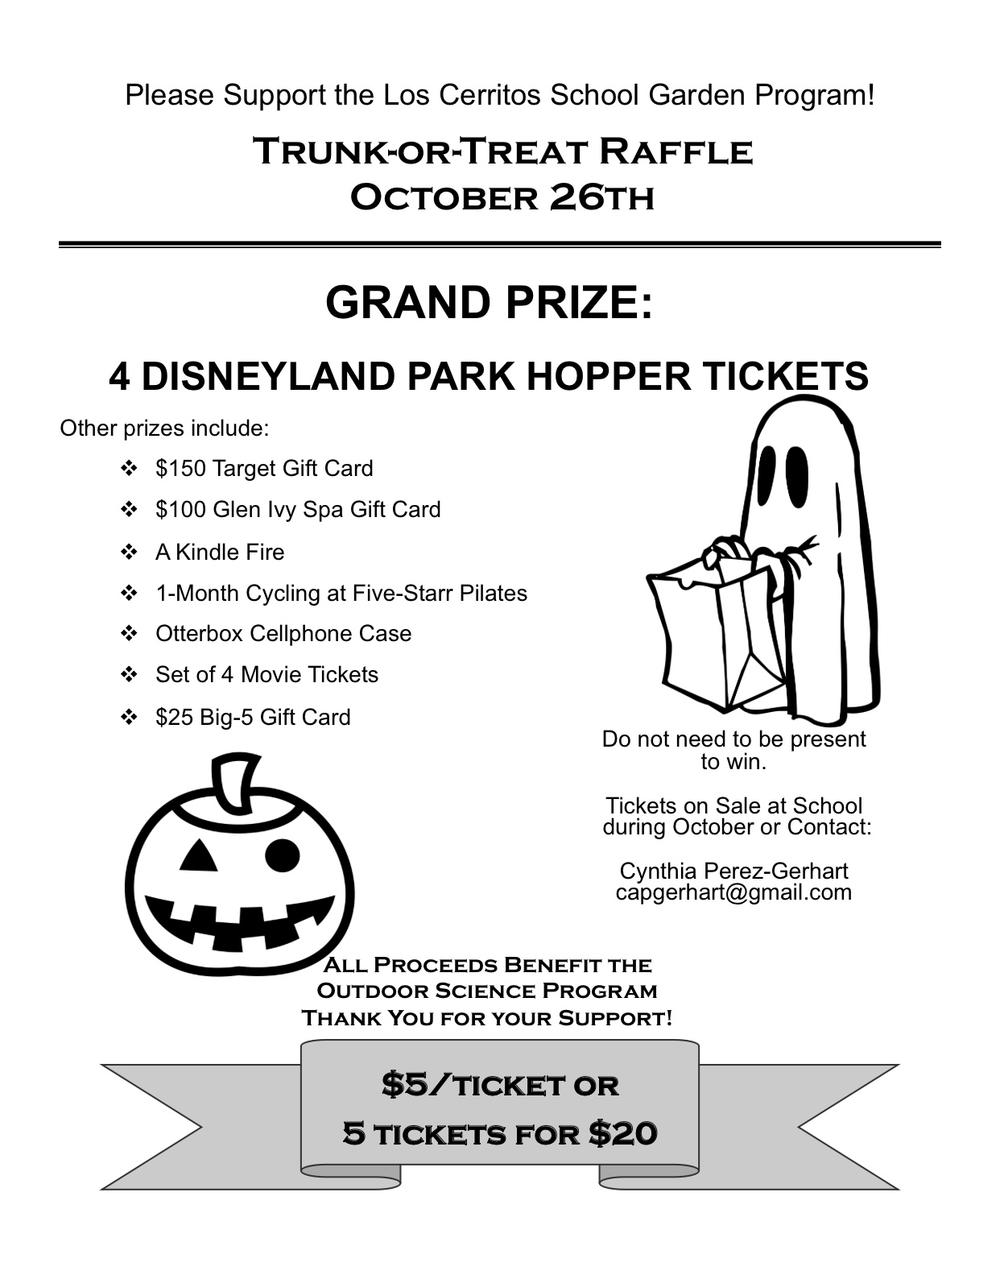 Trunk-or-treat Raffle flyer